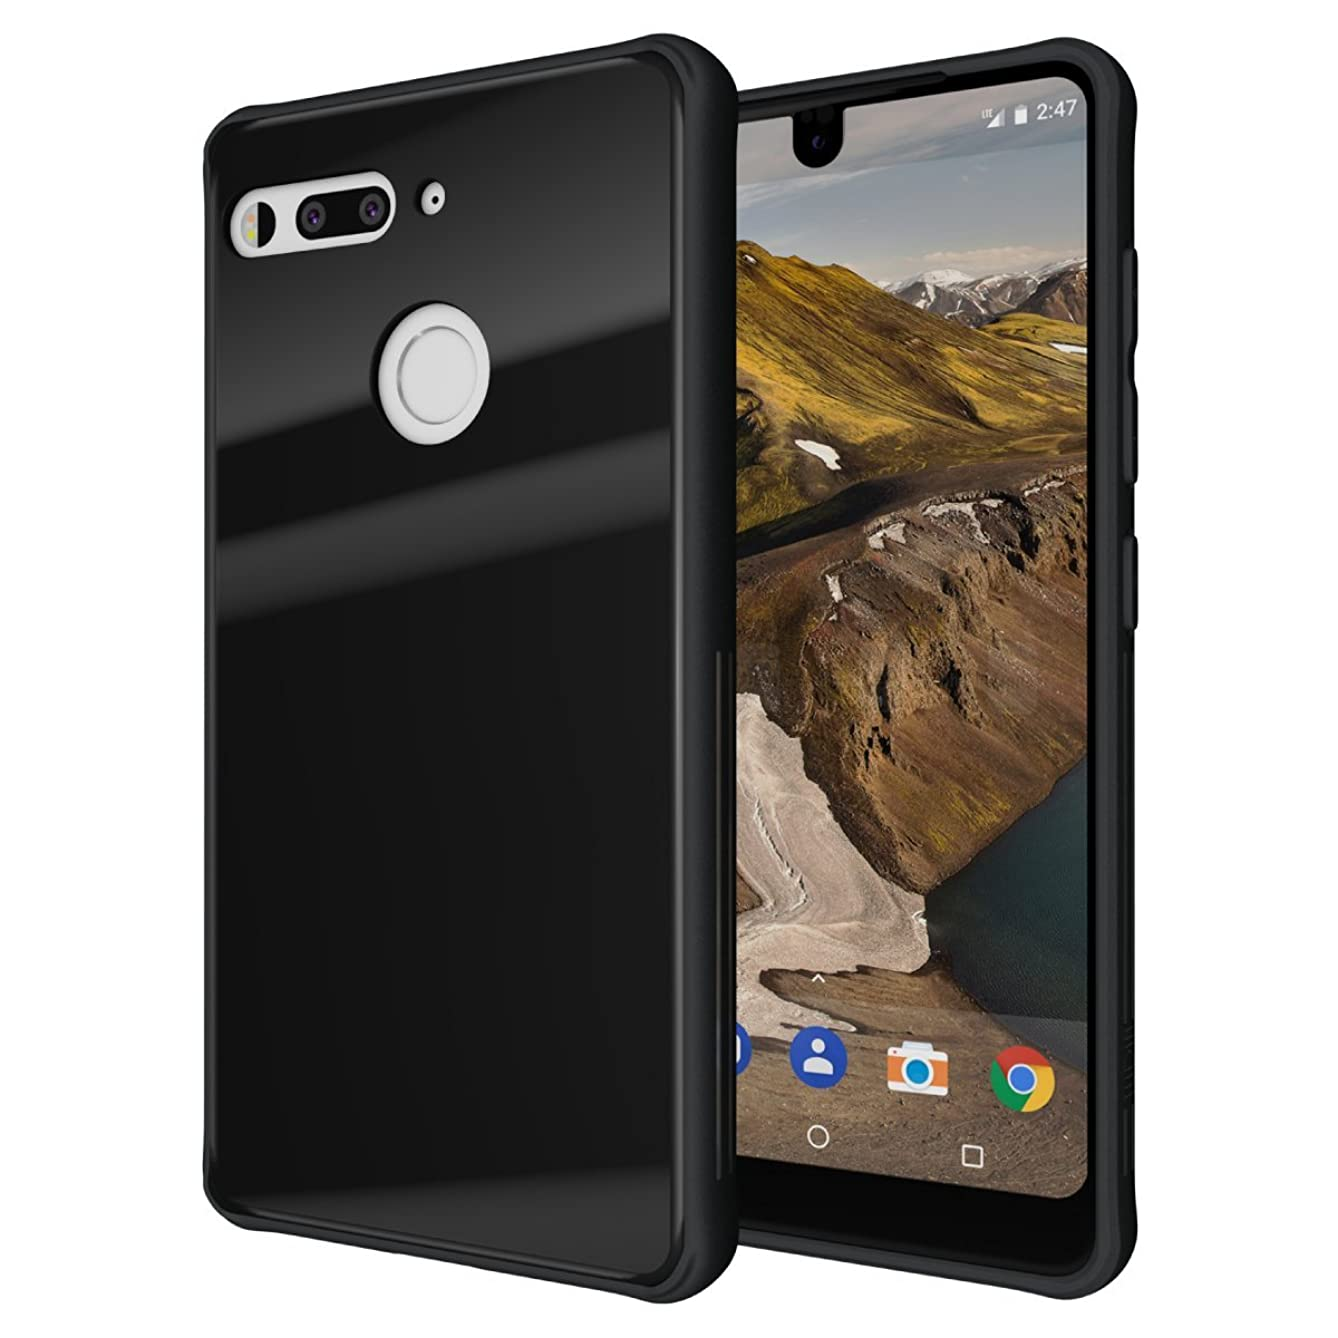 Essential Phone PH-1 Case, TUDIA [Ceramic Feel] Lightweight [GLOST] TPU Bumper Shock Absorption Cover Featuring [Tempered Glass Back Panel] for Essential Phone PH-1 (Black)